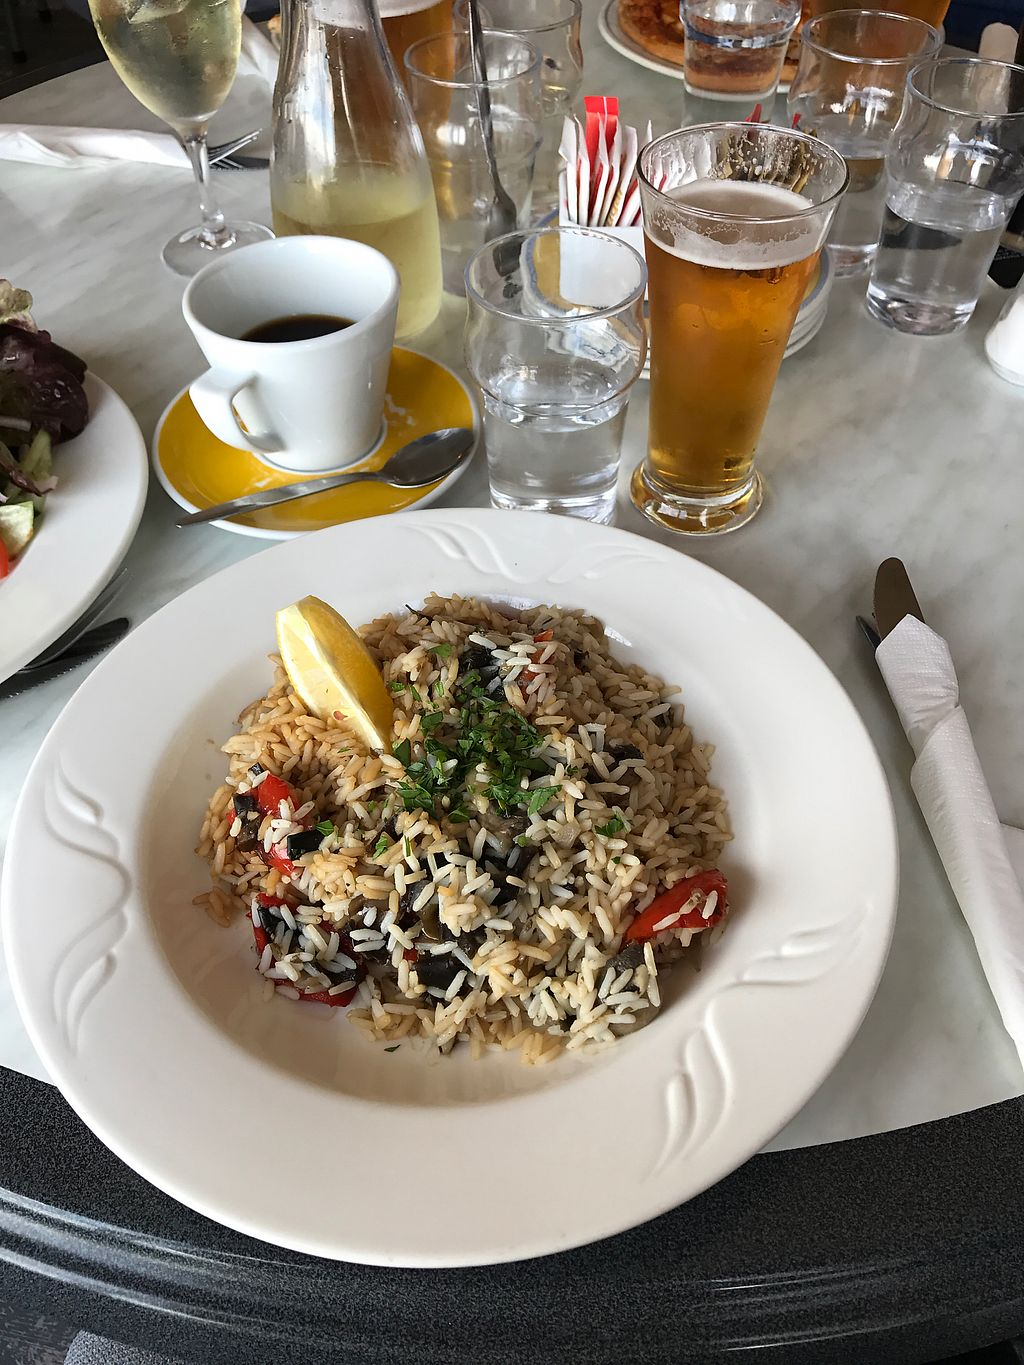 """Photo of O Dowds Cafe  by <a href=""""/members/profile/AlannaghMasterson"""">AlannaghMasterson</a> <br/>sea vegetables, rice, mushroom and red pepper  <br/> August 15, 2017  - <a href='/contact/abuse/image/76014/292965'>Report</a>"""